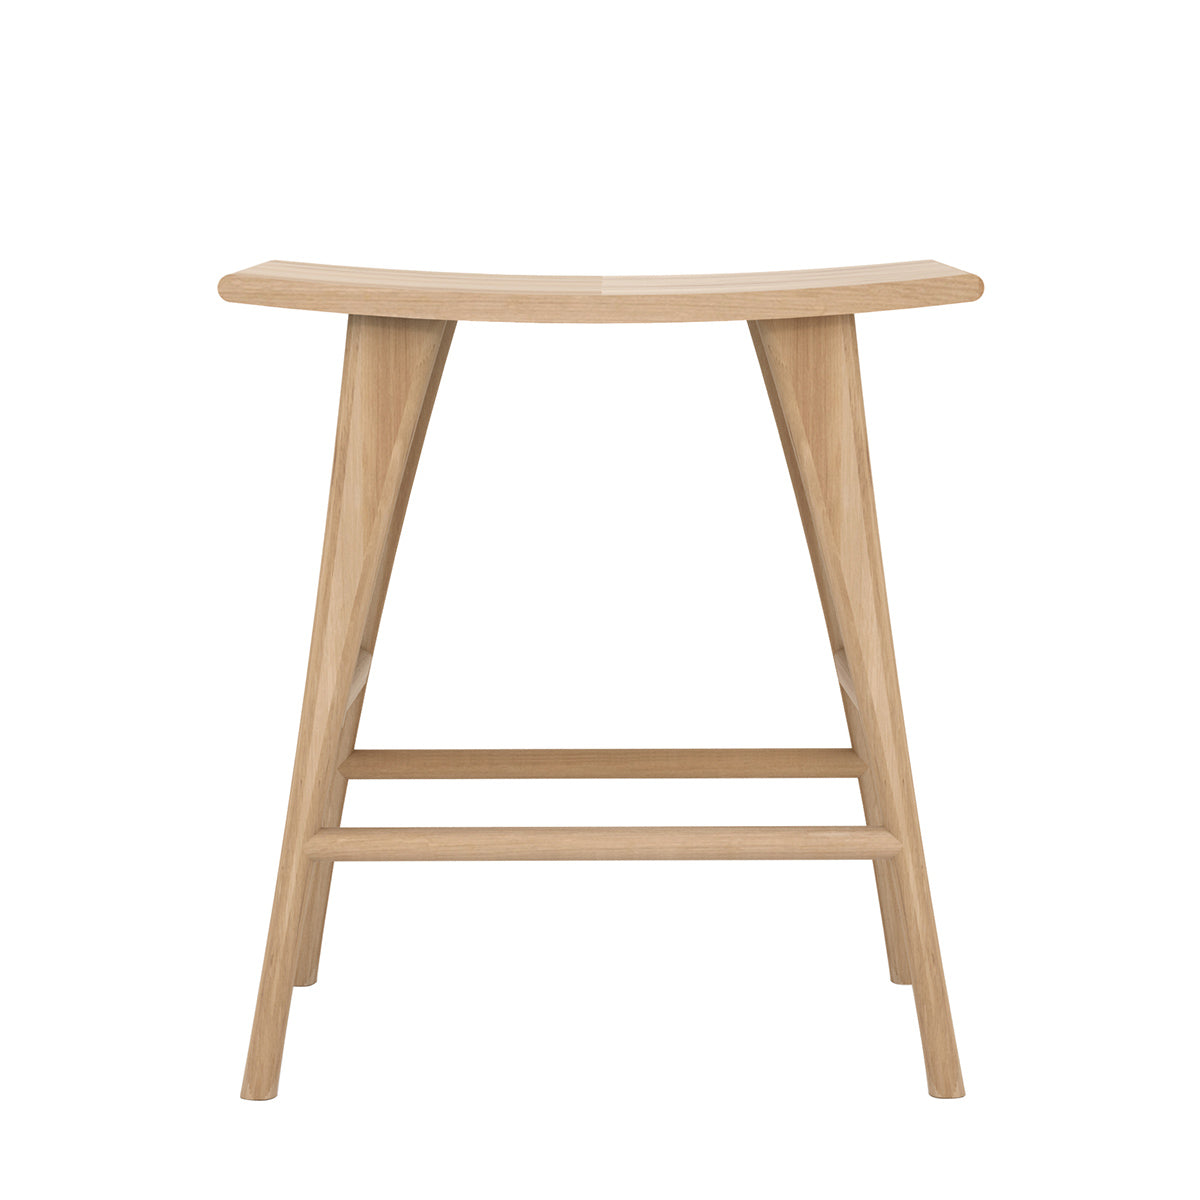 Ethnicraft Oak Osso Counter Stool - Natural